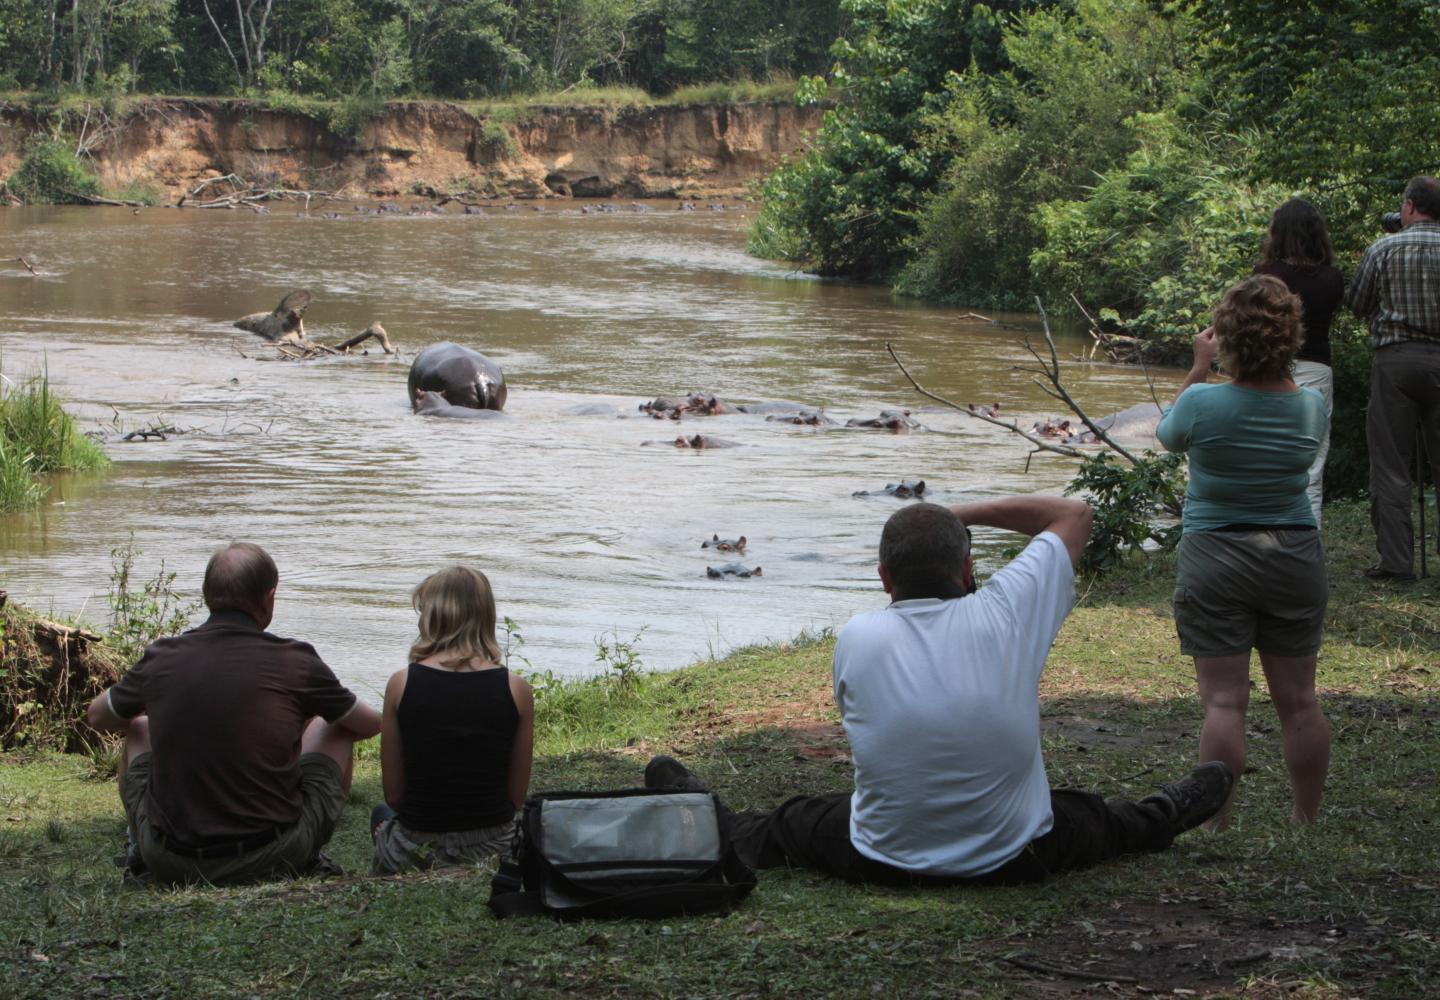 Spotting hippo on the Ishasha River, Queen Elizabeth NPUganda